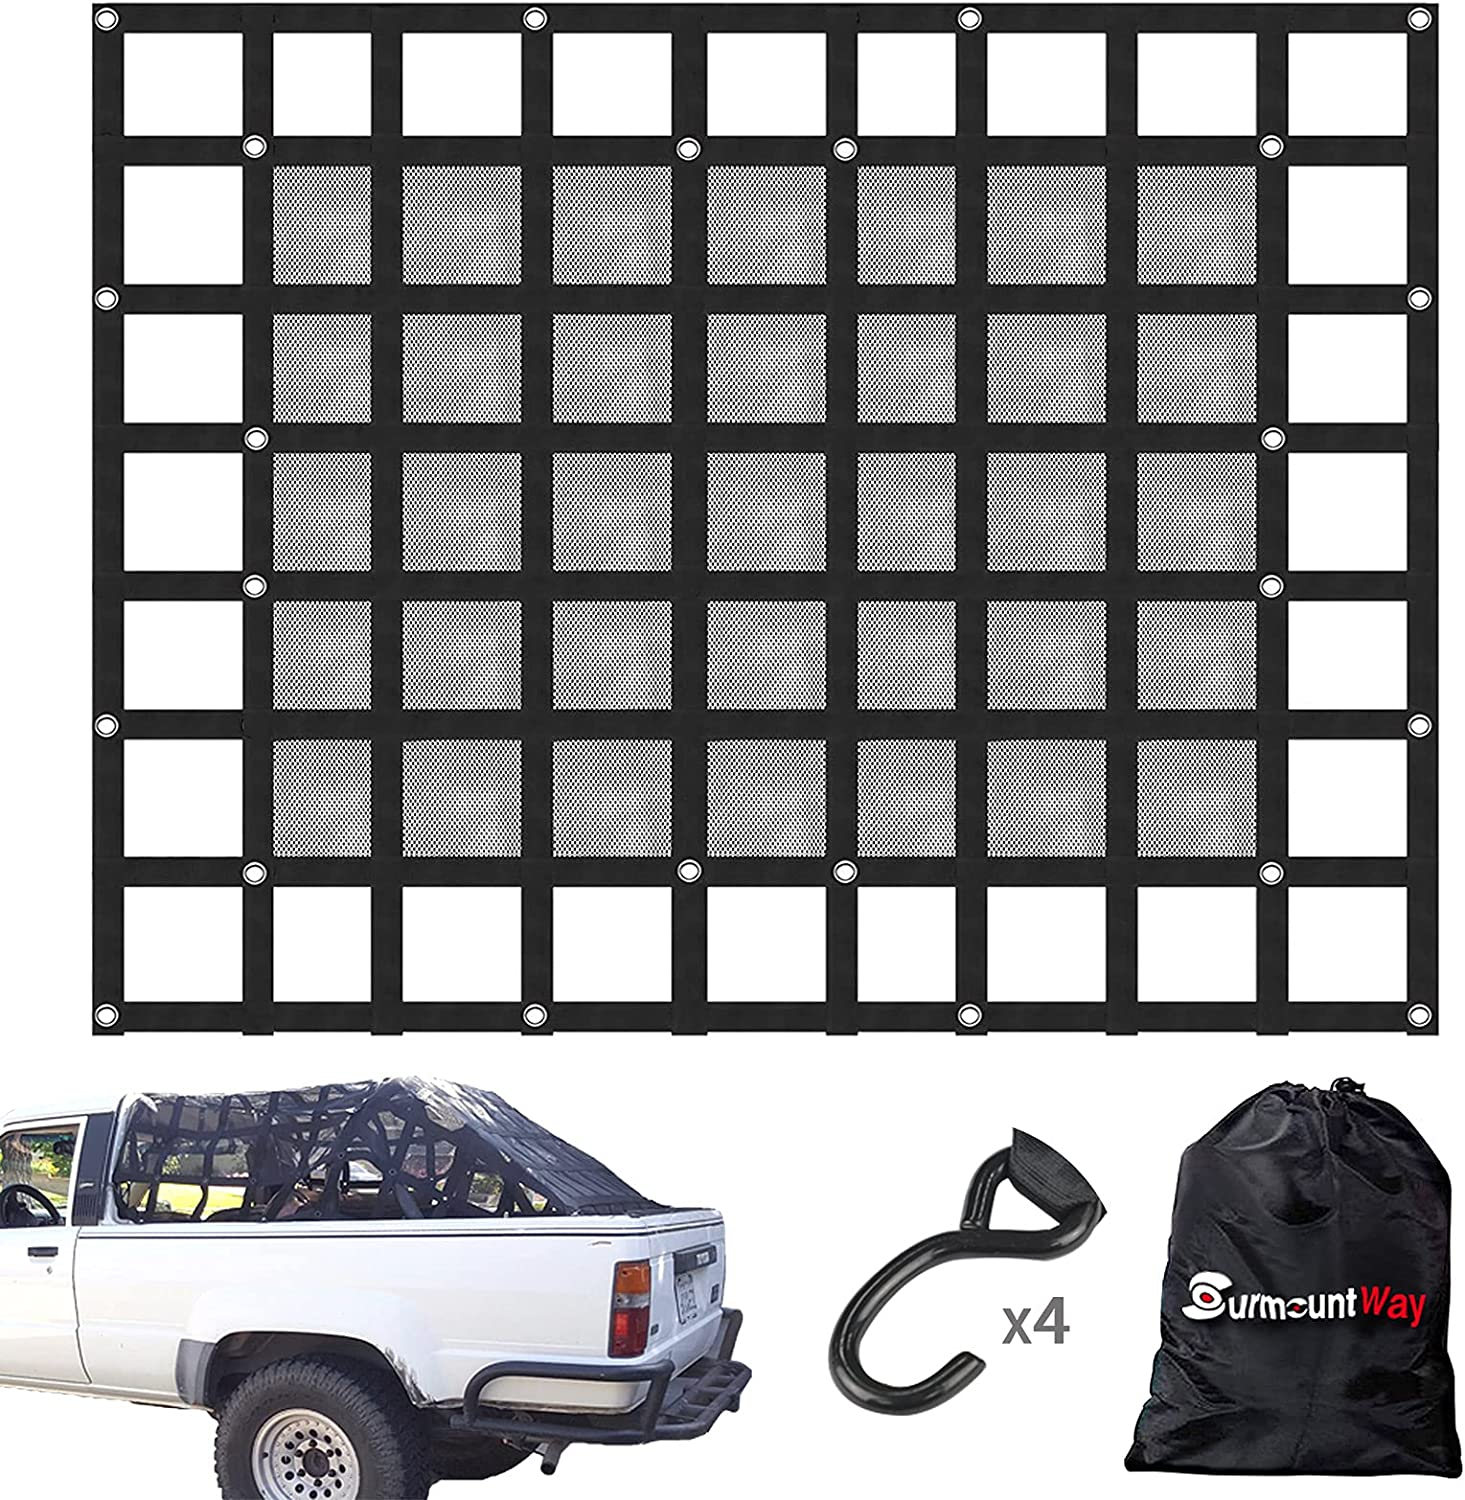 Finally popular In a popularity brand SurmountWay Cargo Net with Mesh Bed Truck 11 Capacity